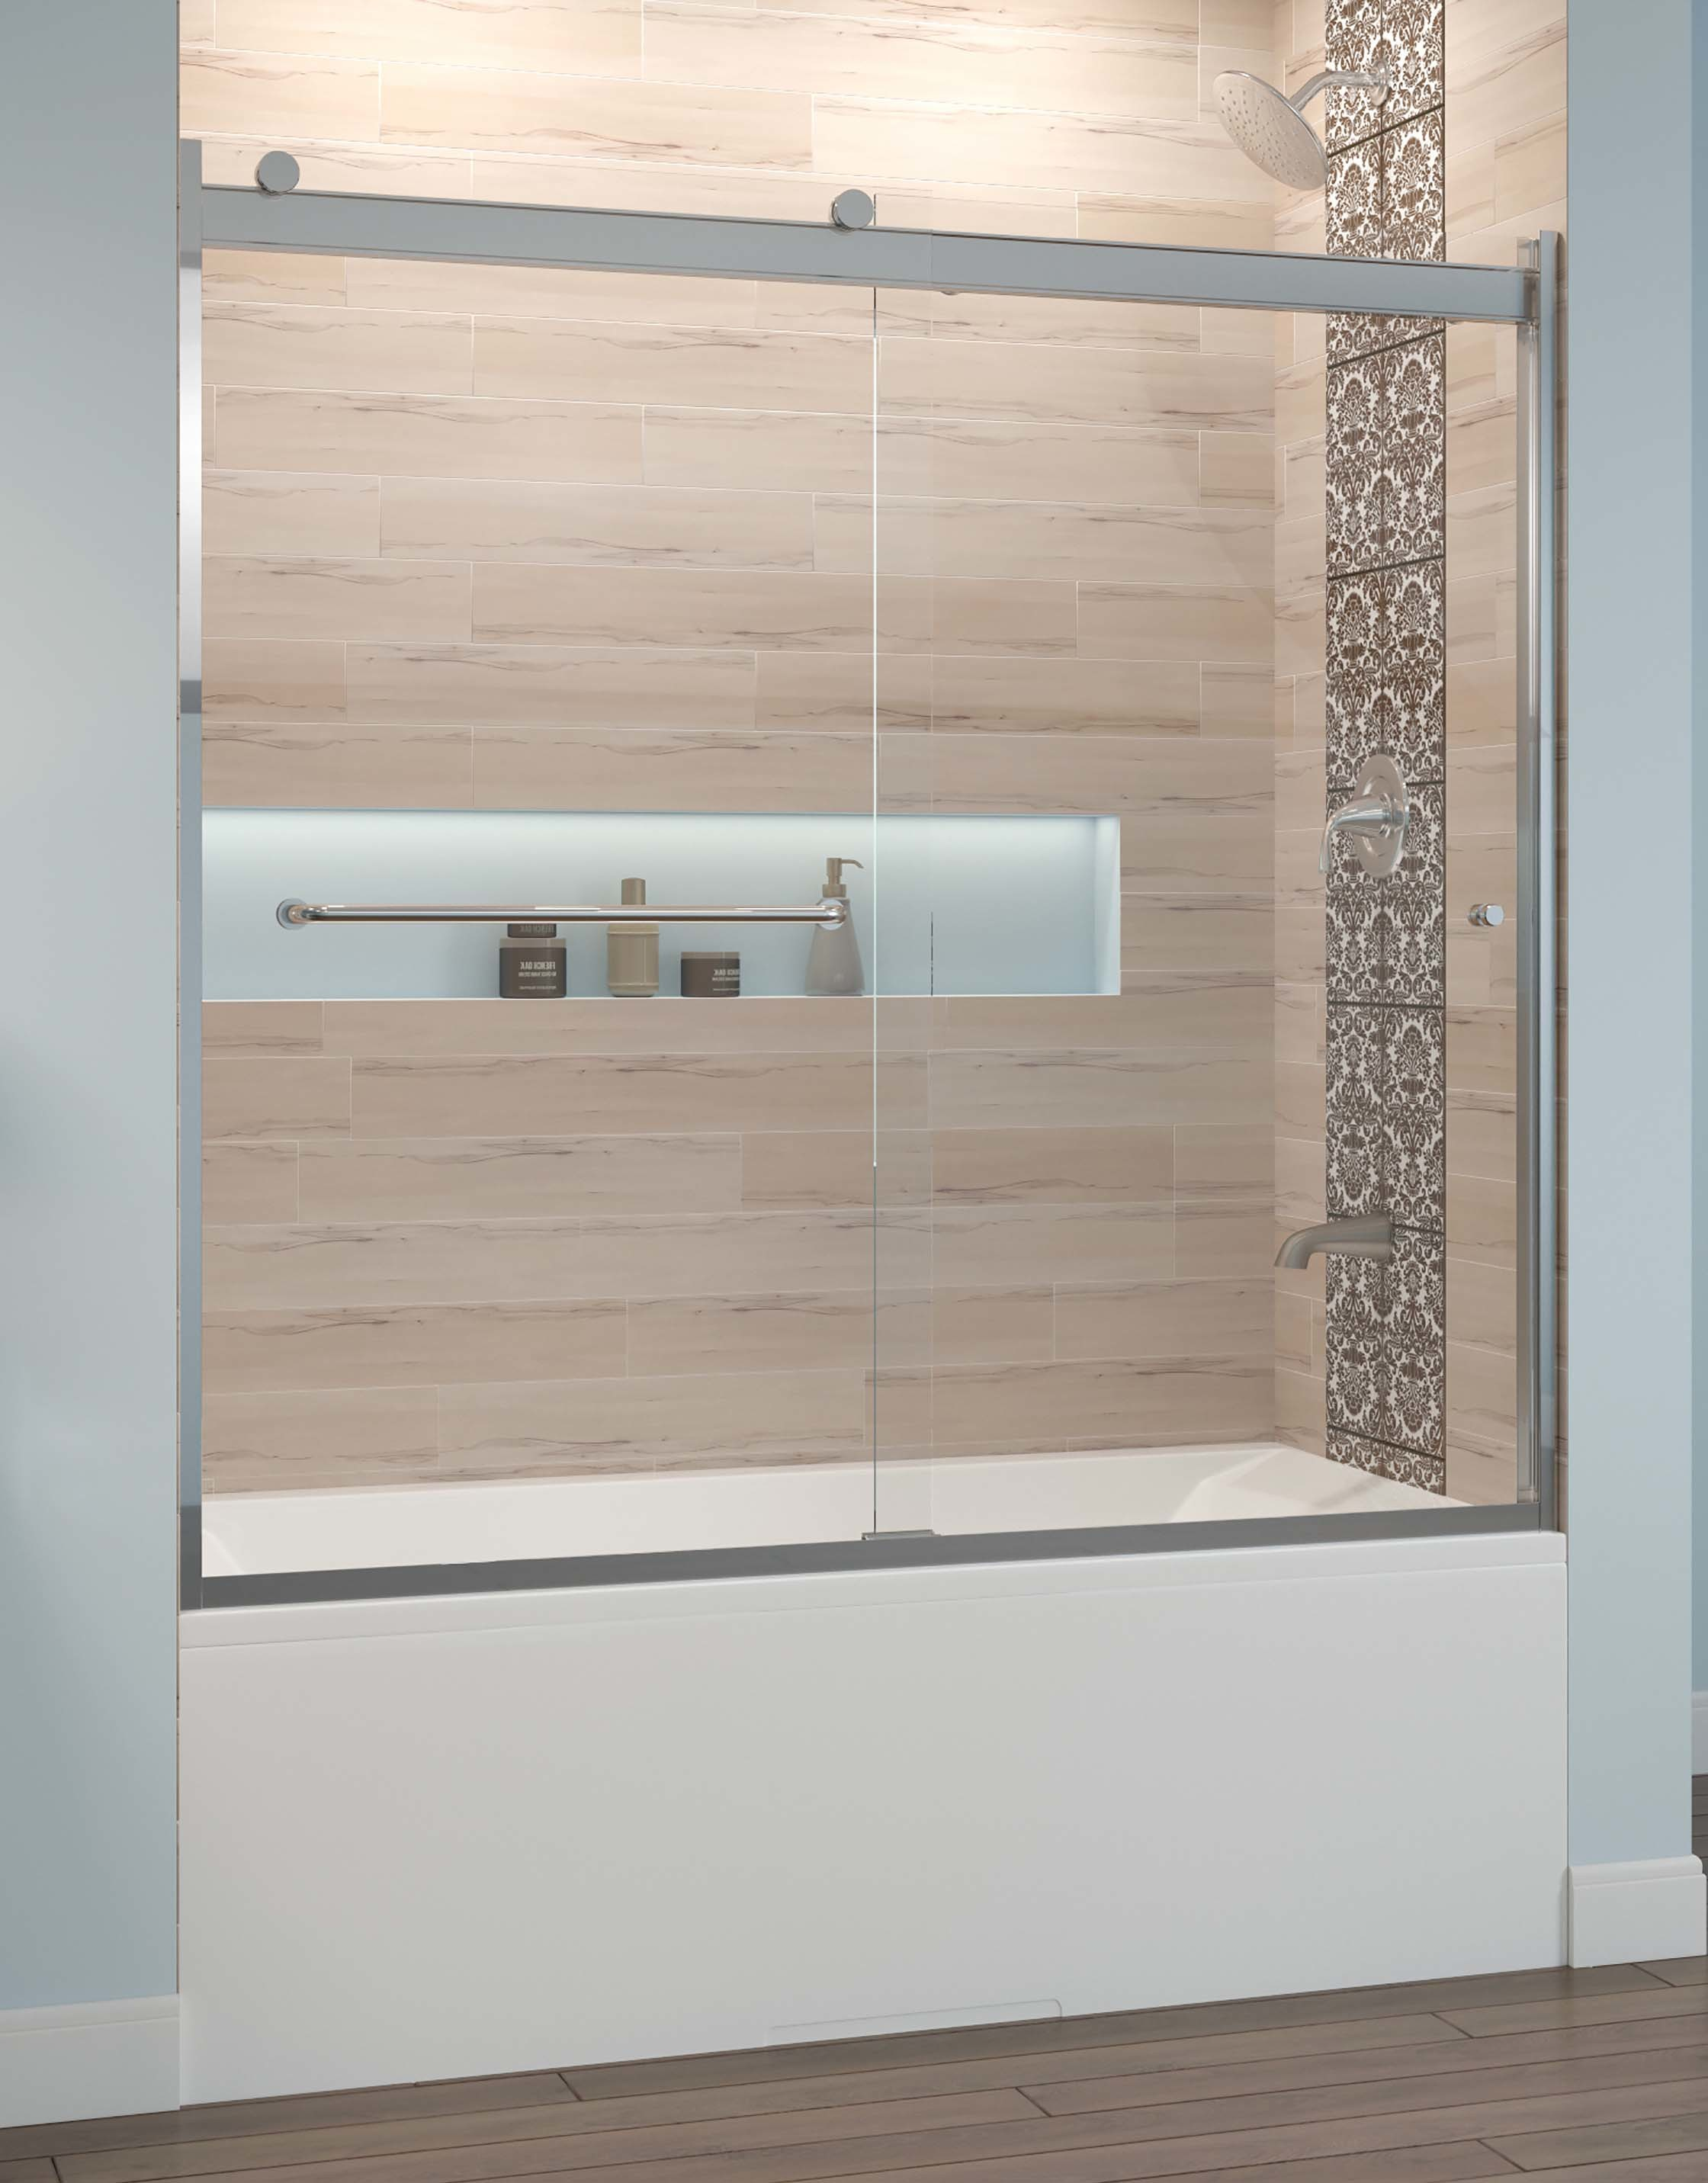 5497 & Rotolo Semi-Frameless 1/4-inch Glass Sliding Bath | Basco Shower Doors